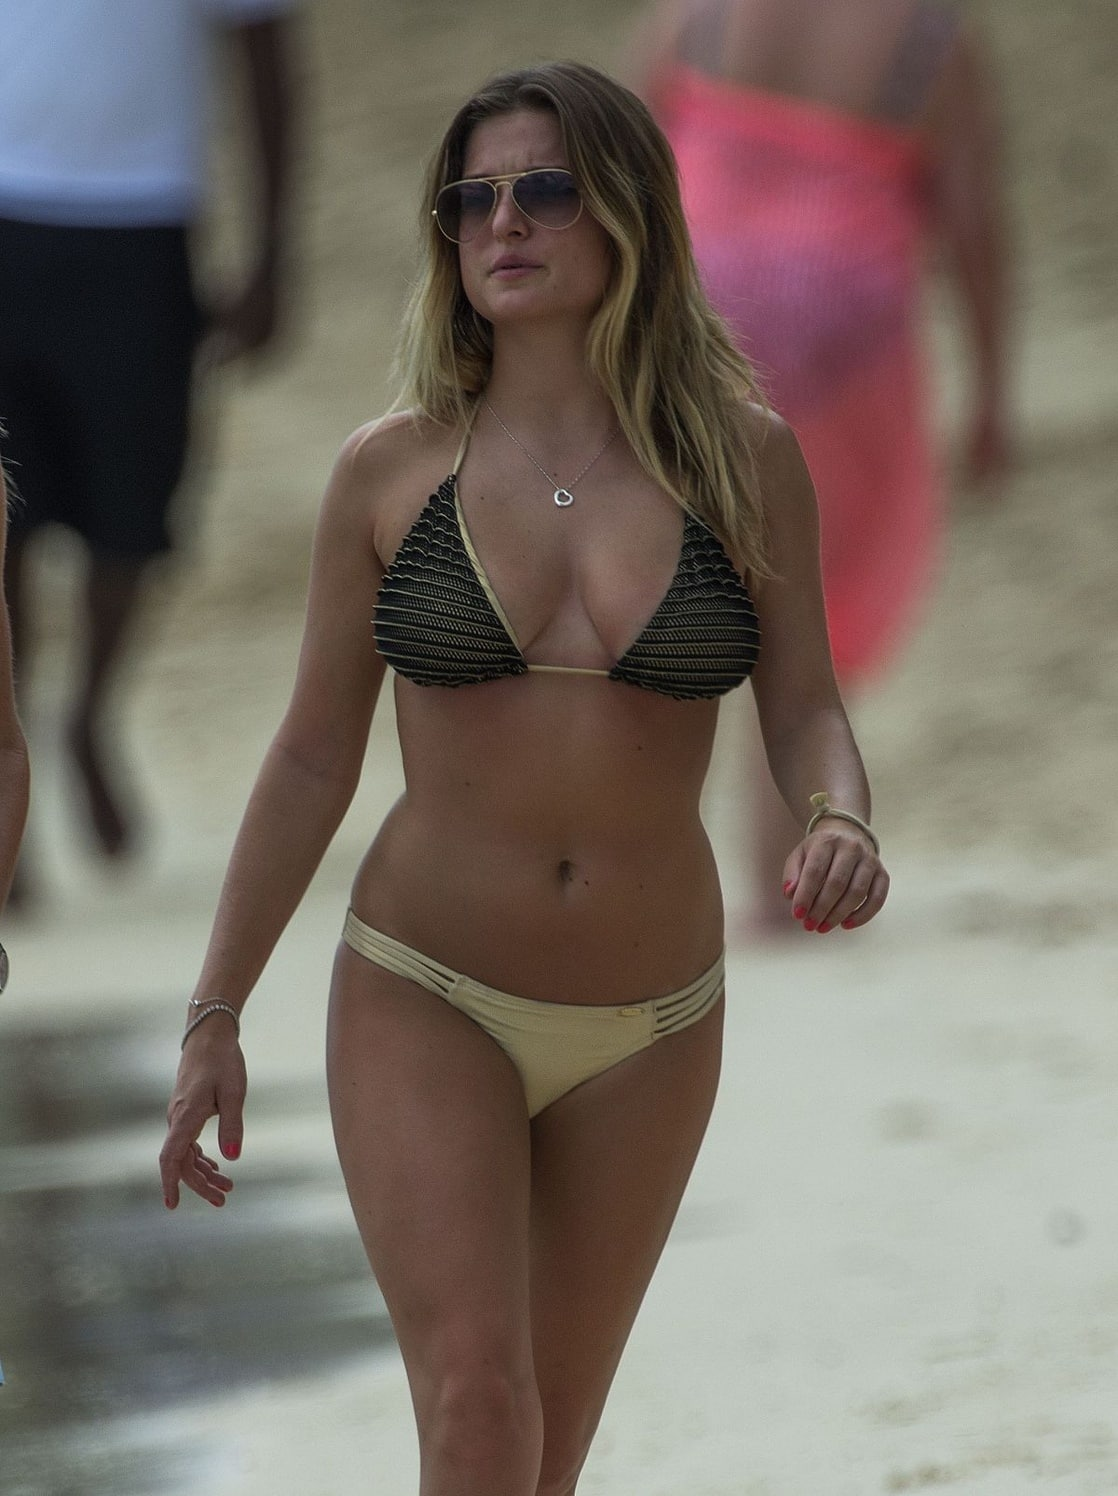 Zara Holland nudes (59 pictures), images Topless, YouTube, cleavage 2019